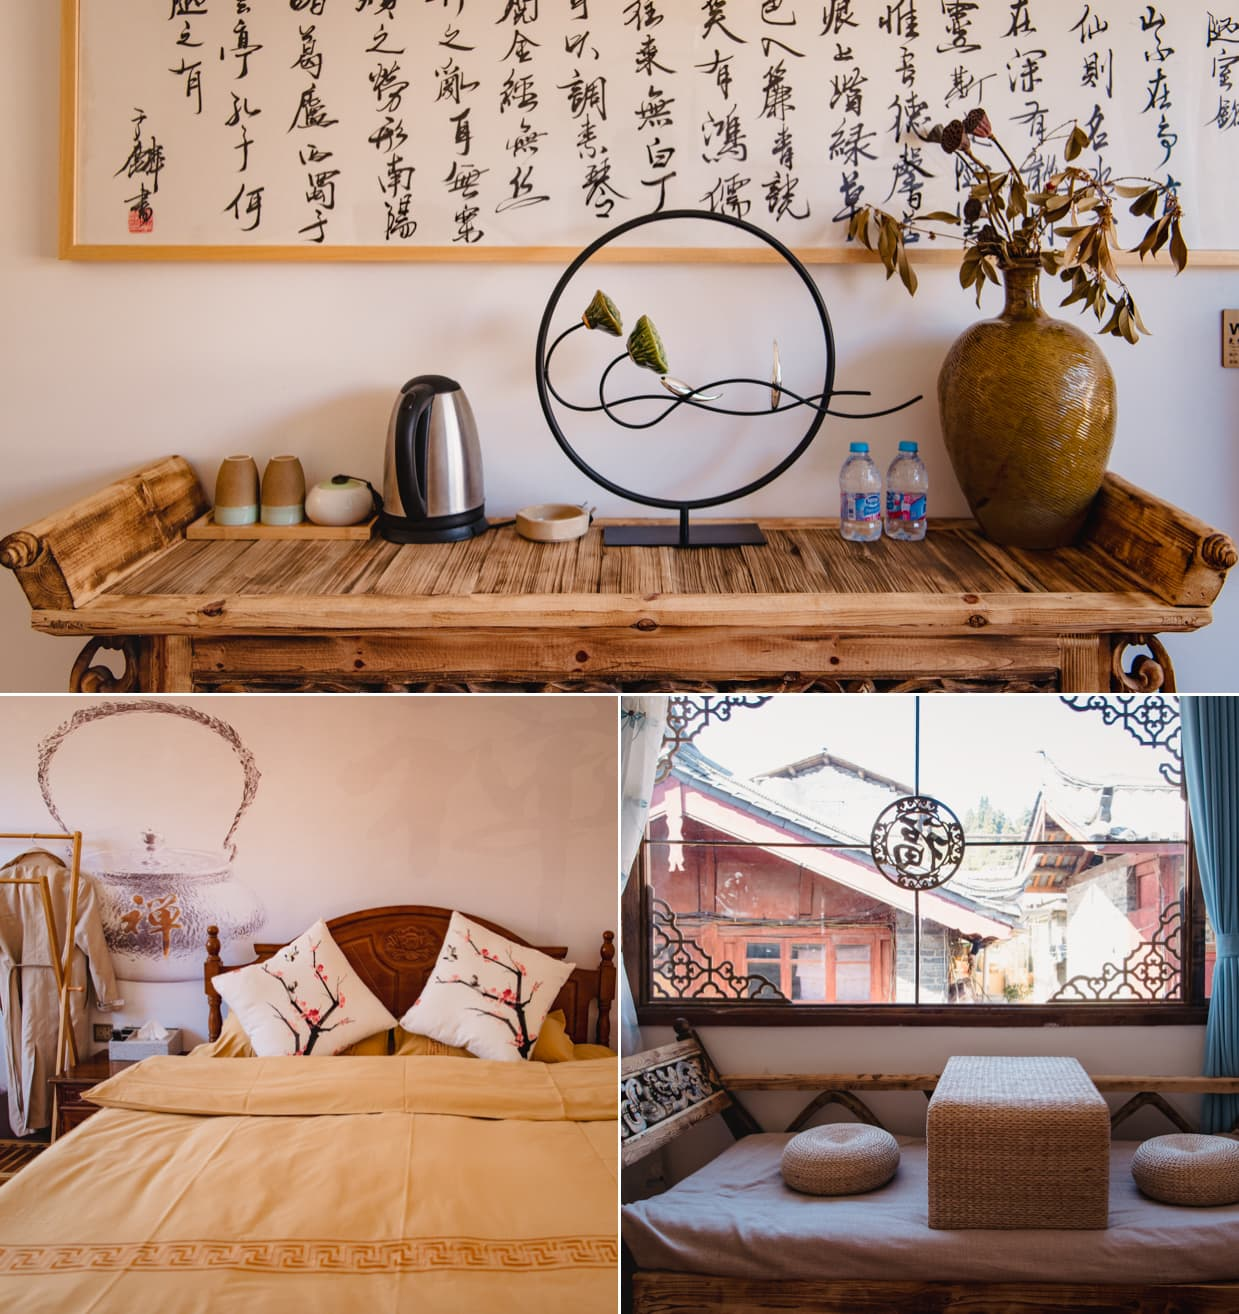 Our hotel bedroom in Lijiang, China.